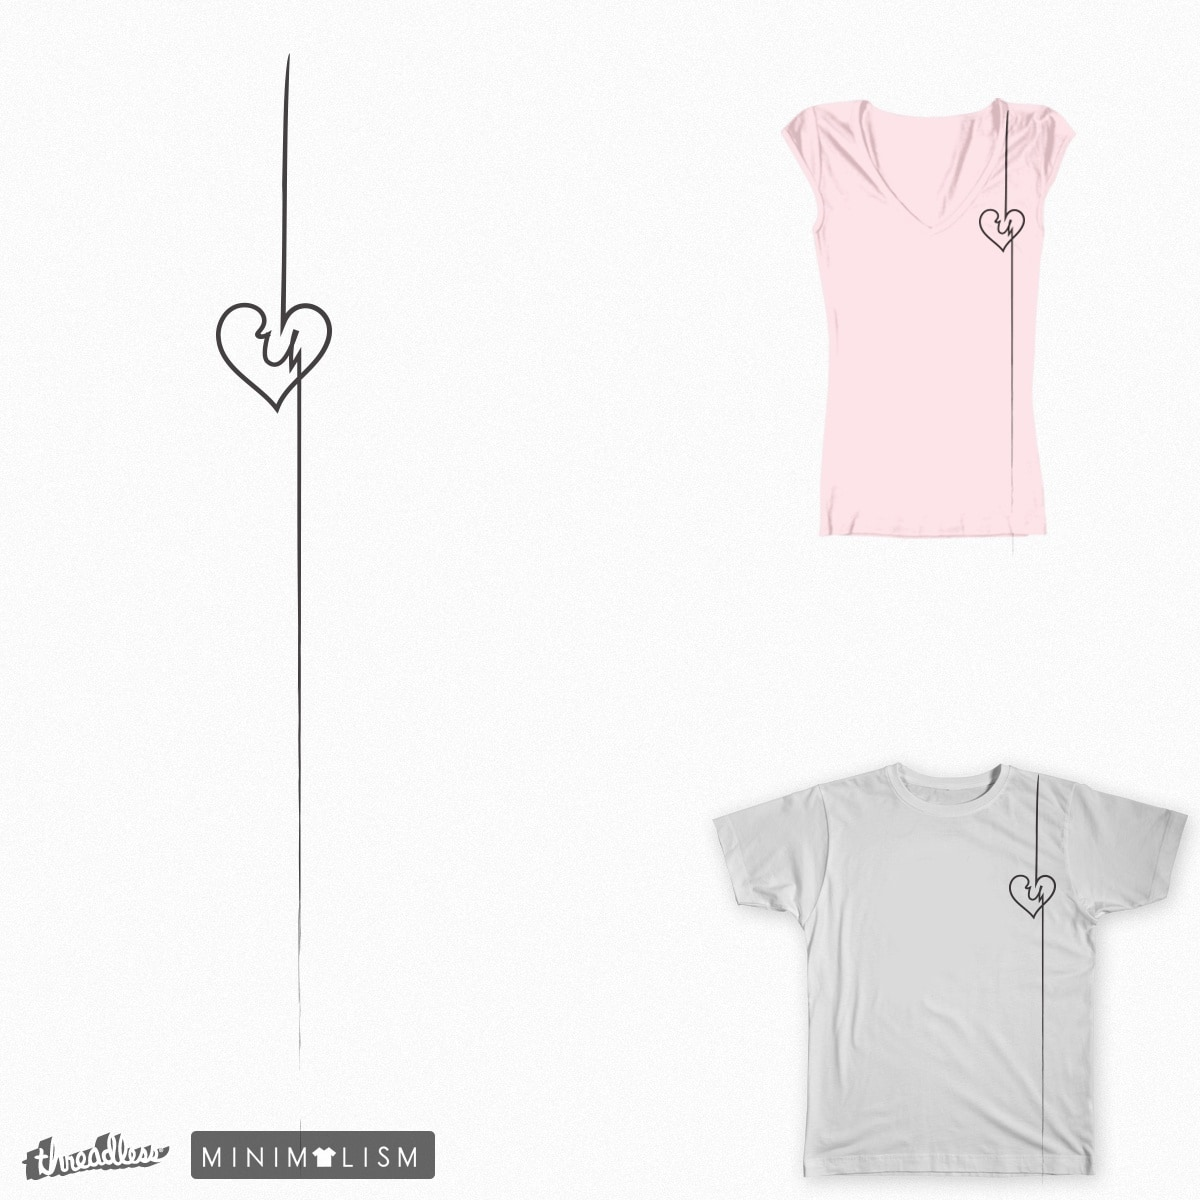 Heart At U by adollei on Threadless